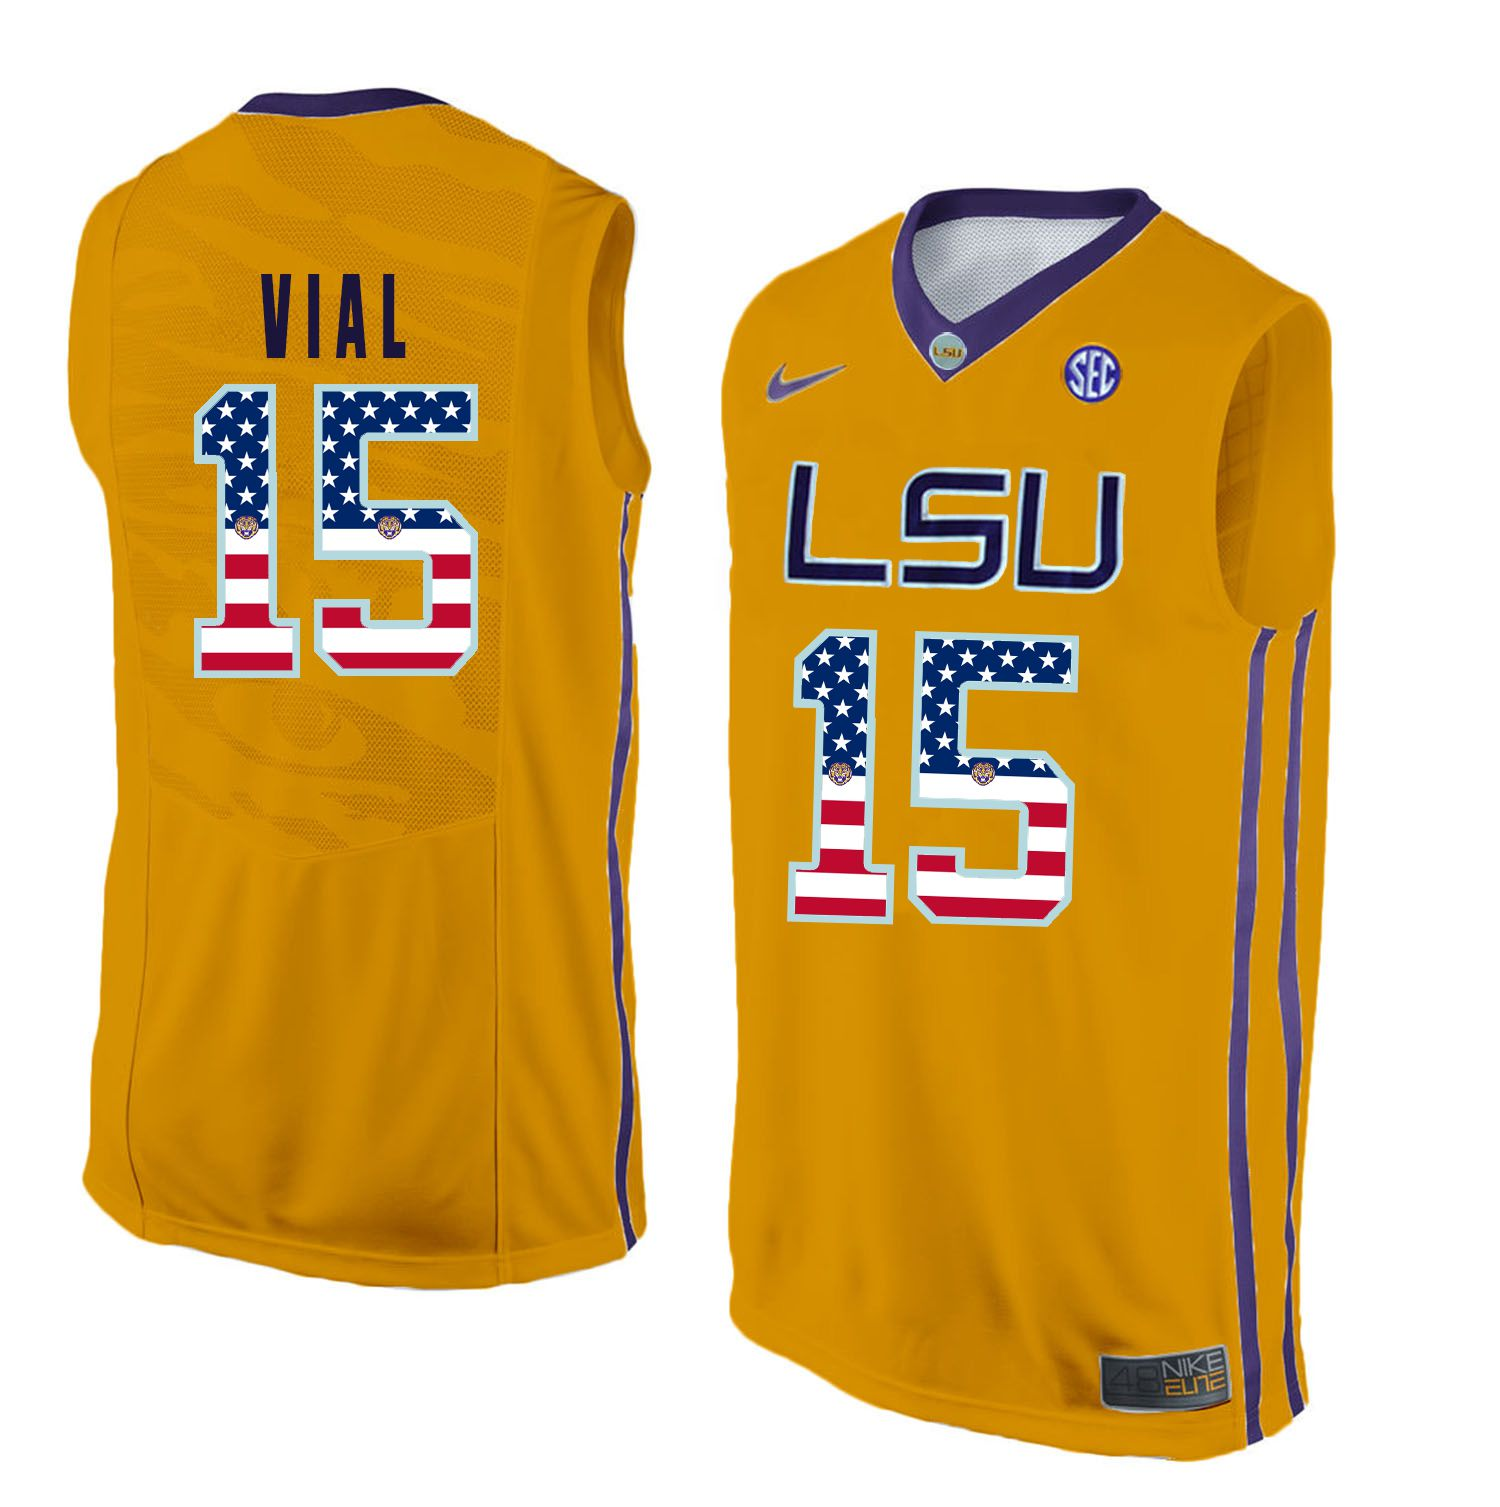 Men LSU Tigers 15 Vial Yellow Flag Customized NCAA Jerseys